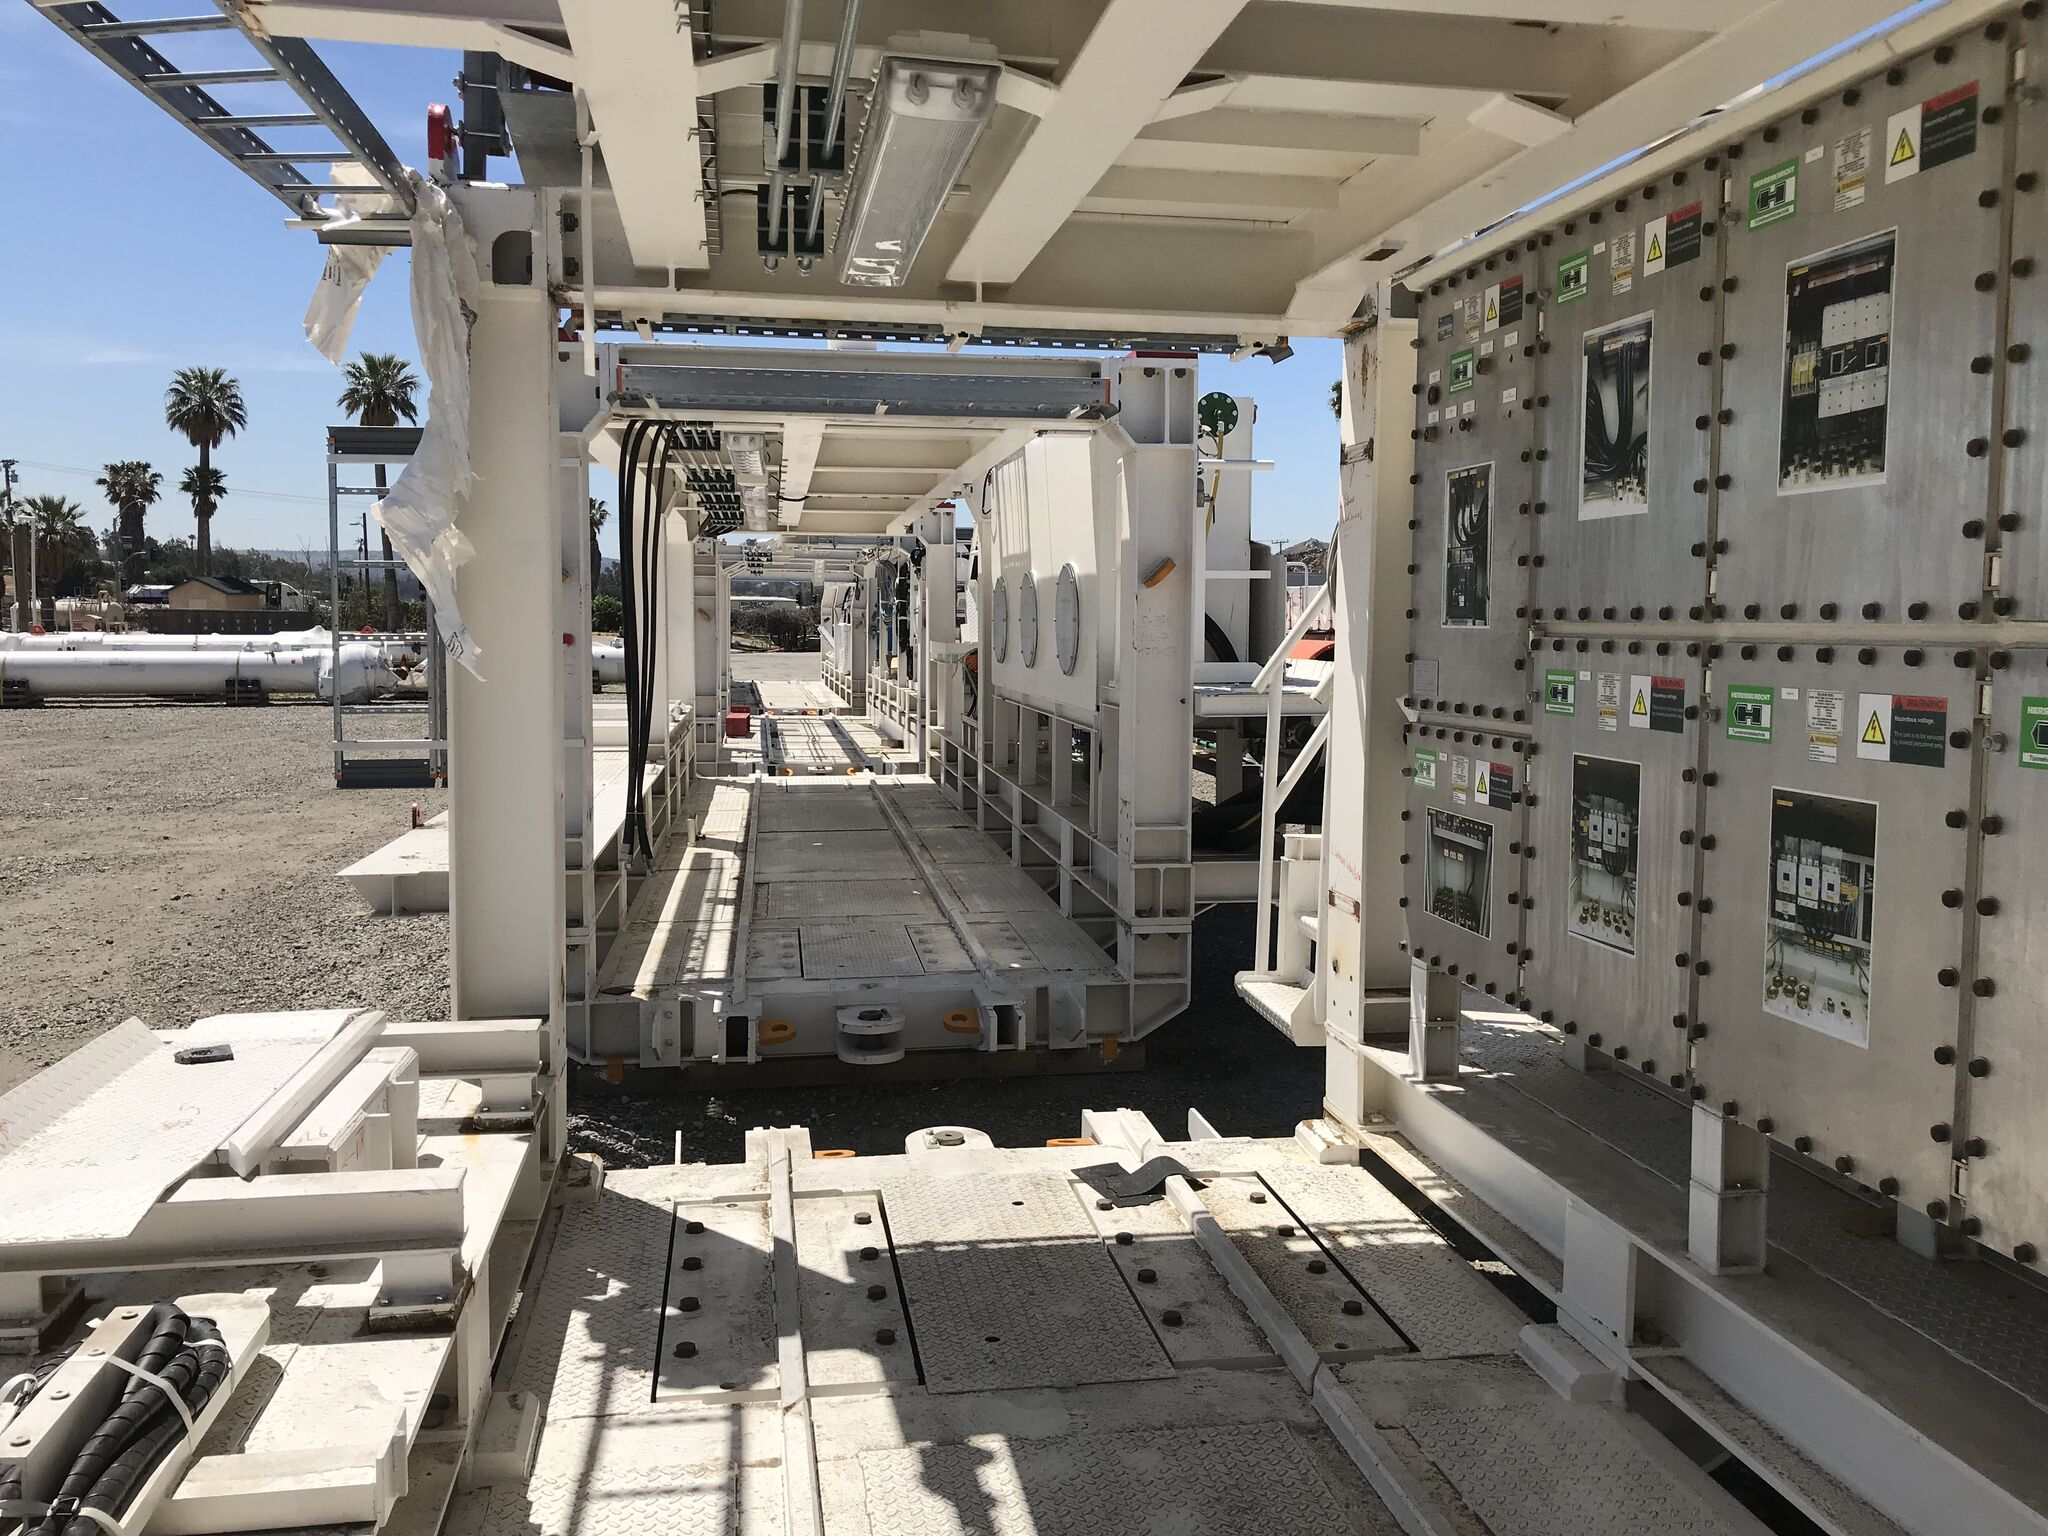 Tunnel boring machine component waiting assembly inside Wilshire/La Brea staging yard (May 2018)